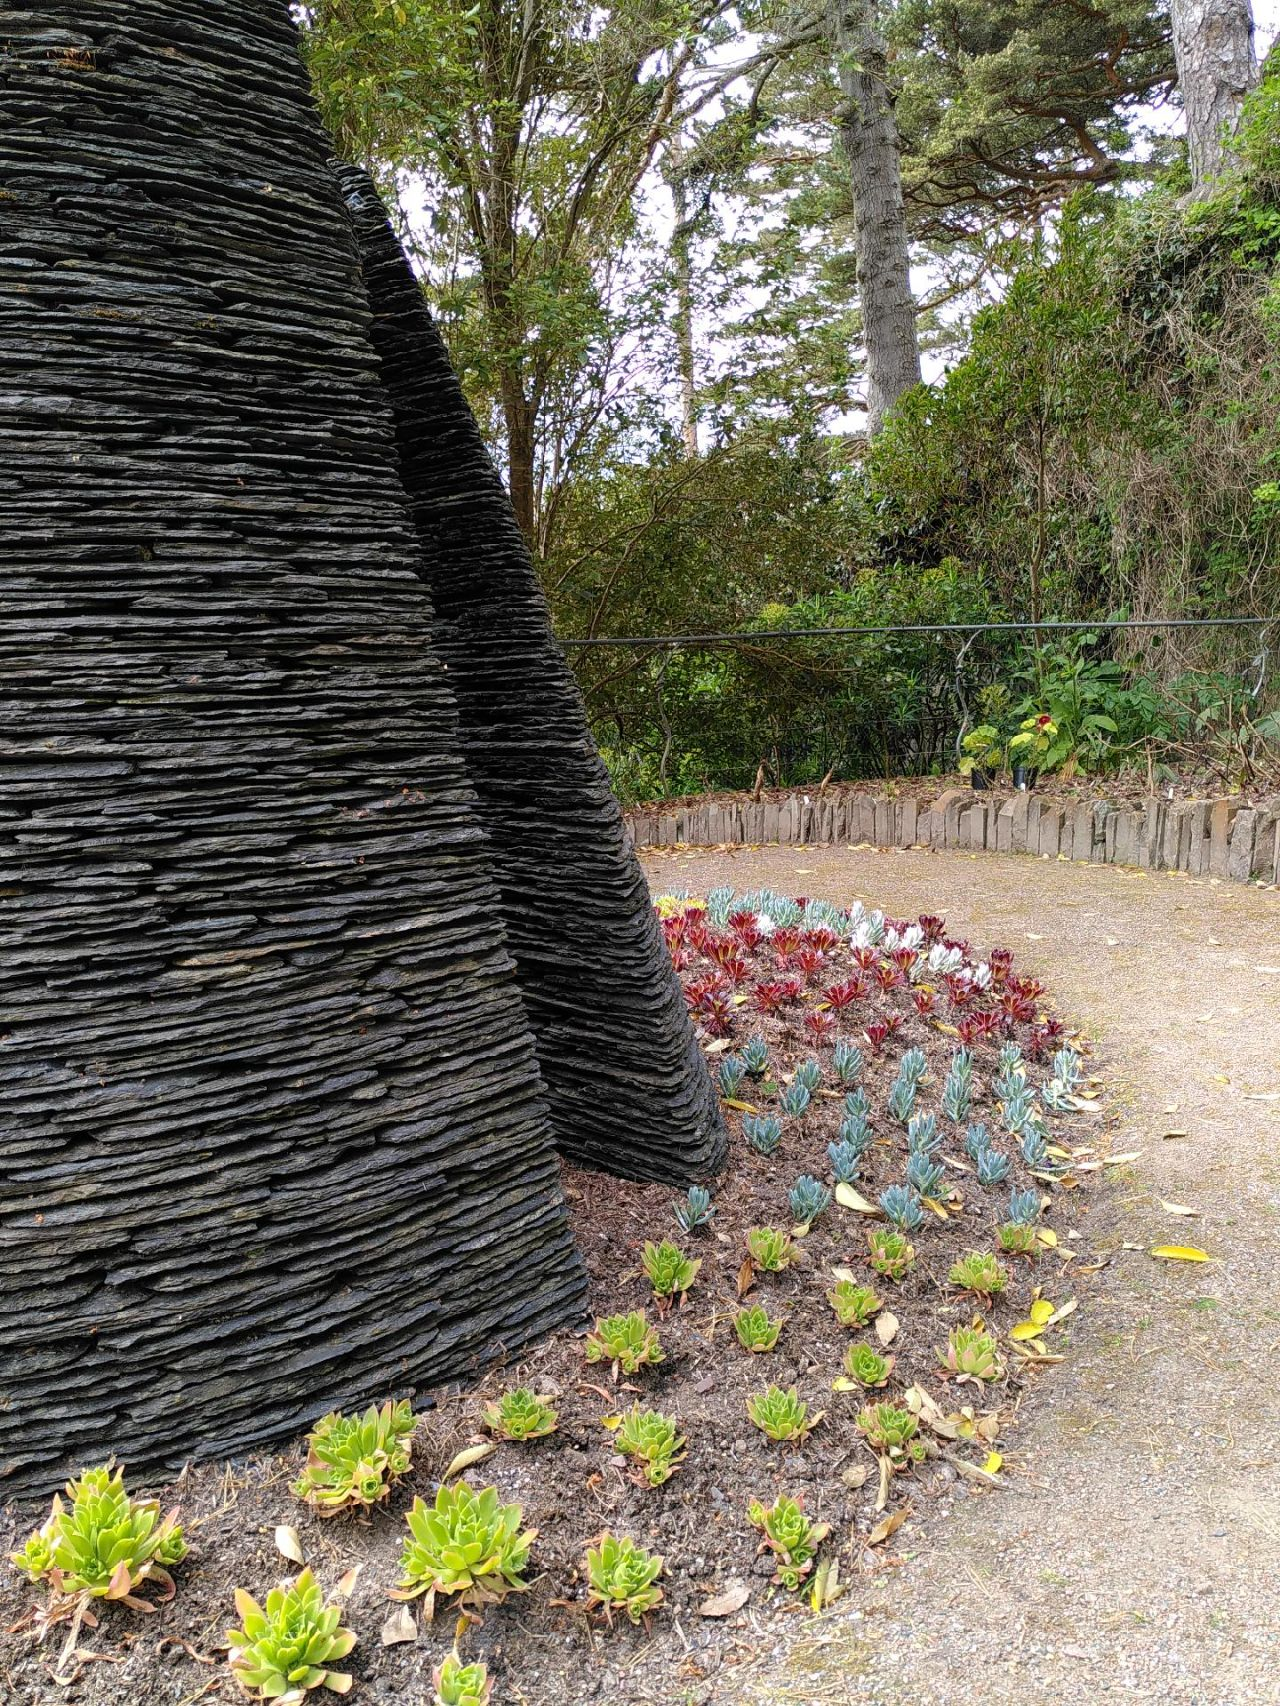 Tall conical slate structure on the left with succulent plants spaced regularly around the base. Their colour changes from bright green to dull green/blue to deep red. A gravel path leads from bottom right to middle. Background is greenery.